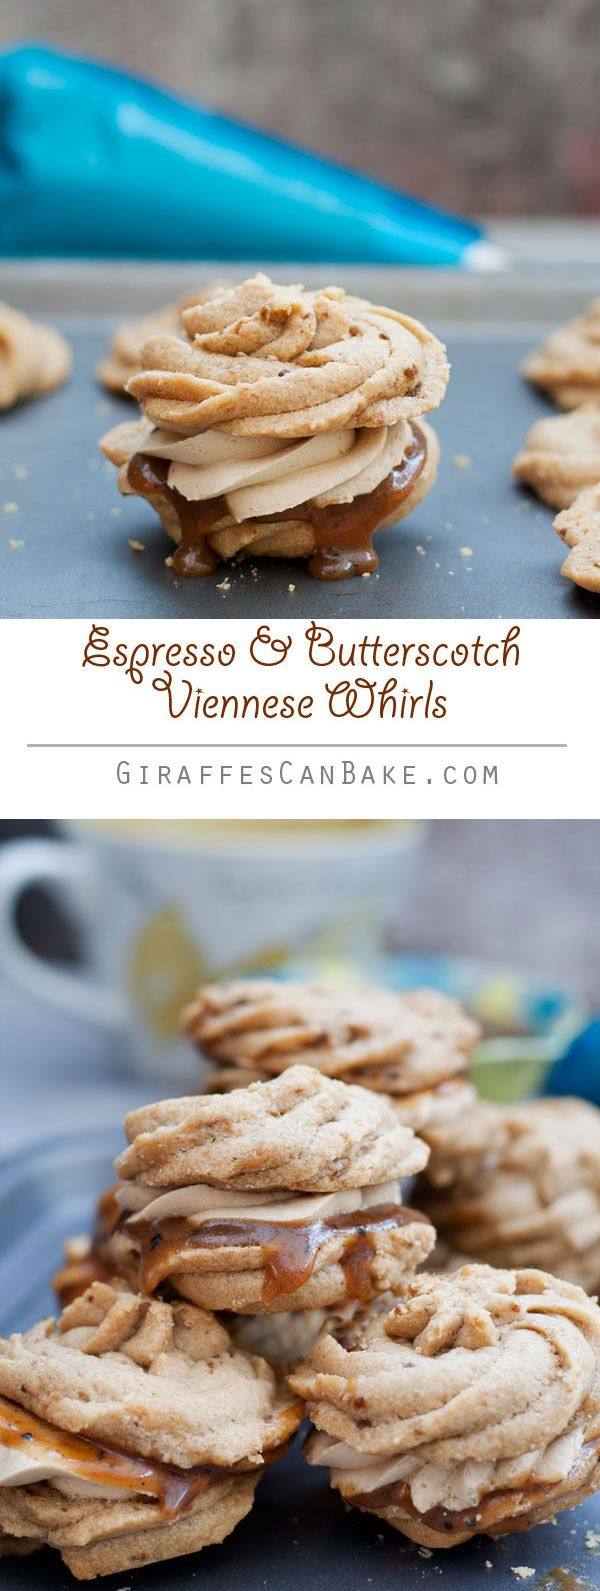 Espresso and Butterscotch Viennese Whirls - Melt in your mouth buttery shortbread, flavoured with freshly brewed espresso, sandwiched together with homemade butterscotch sauce and espresso buttercream. The delicate cookies are full of flavour, quick and easy to make and taste absolutely divine. Once you try the flavours of coffee and butterscotch together, you'll wonder why you've never tried it before!